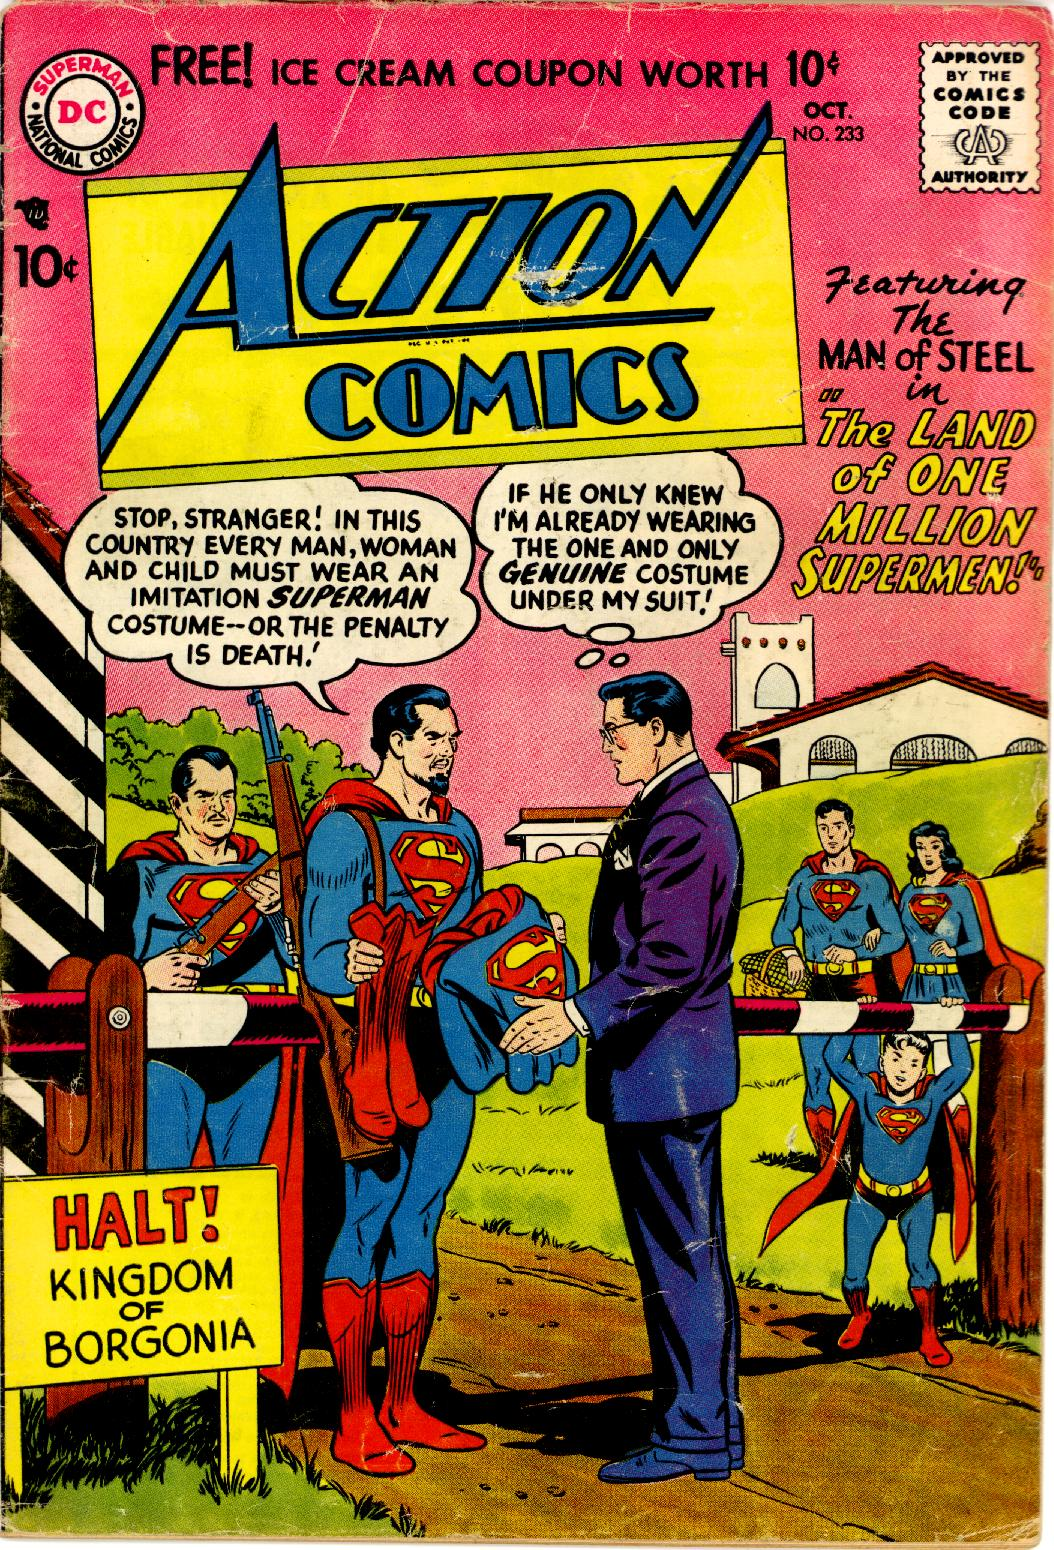 Read online Action Comics (1938) comic -  Issue #233 - 1